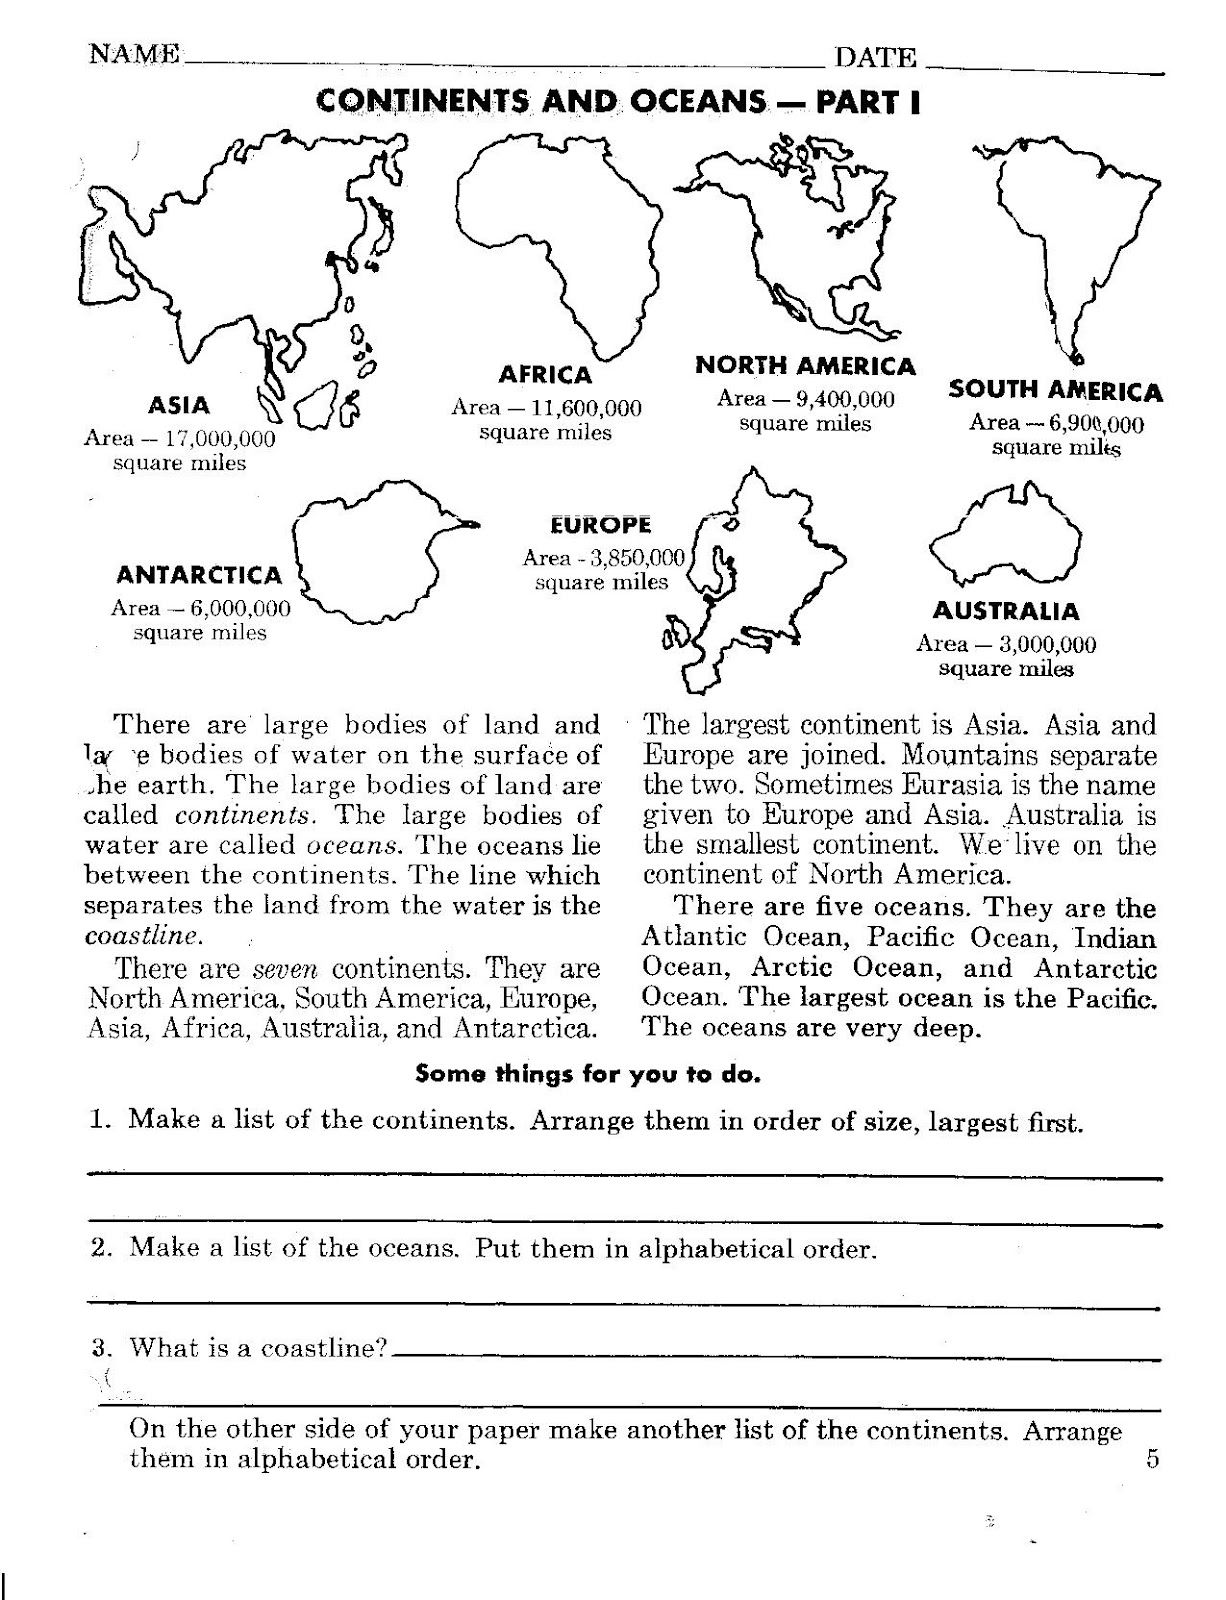 medium resolution of Continents and Oceans Worksheets   Continents and oceans